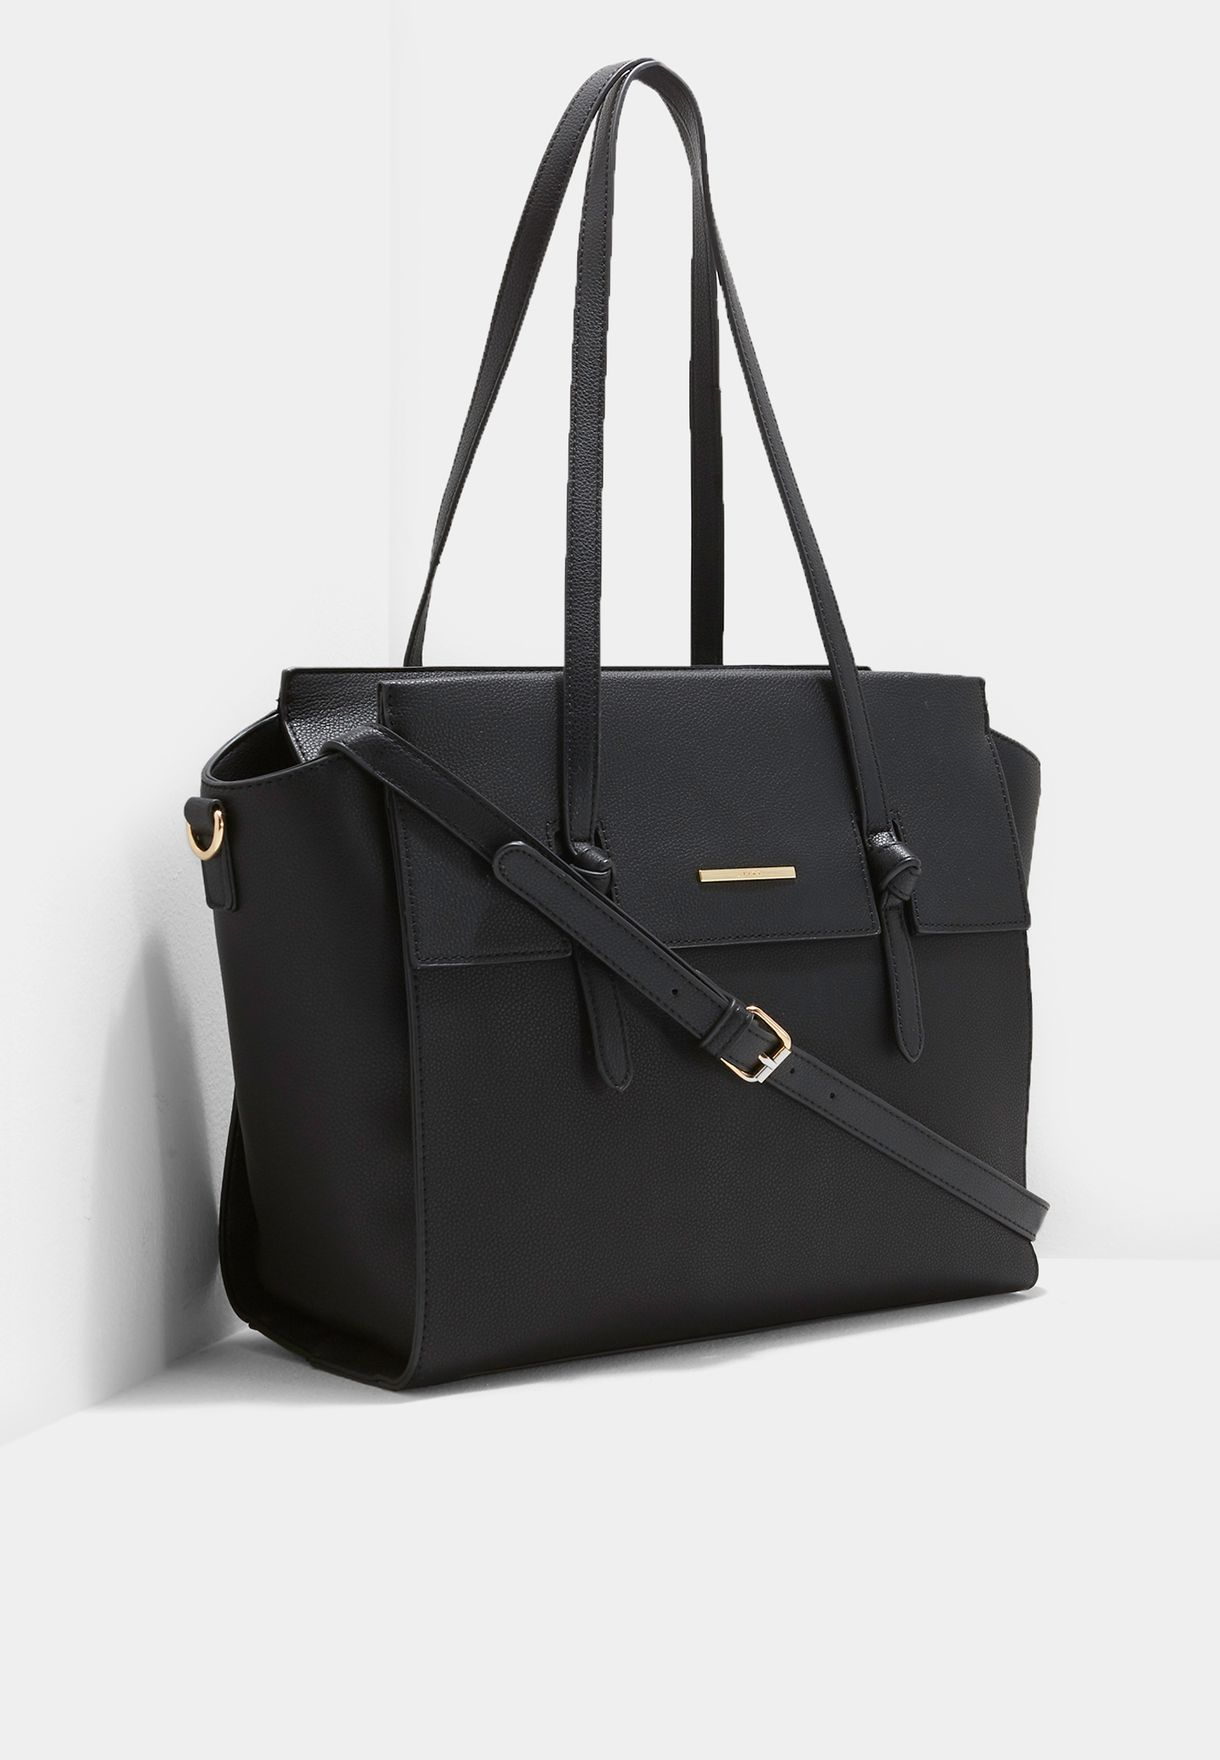 1afbfb4fdd8 Shop Aldo black Elaycien Tote ELAYCIEN98 for Women in UAE - AL729AC41KYC